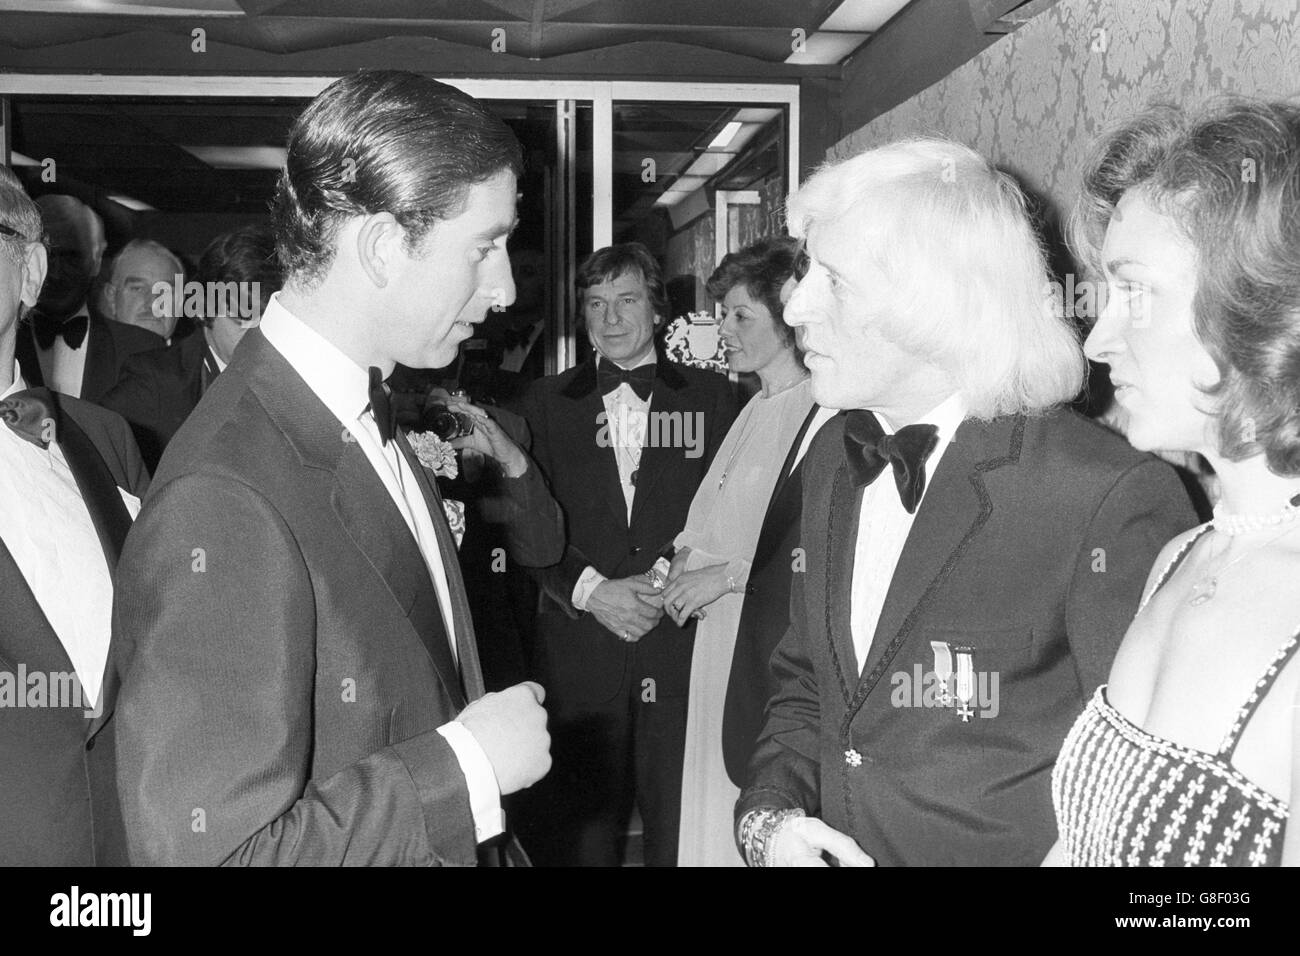 Prince Charles and Jimmy Savile - Caerphilly, Wales - Stock Image